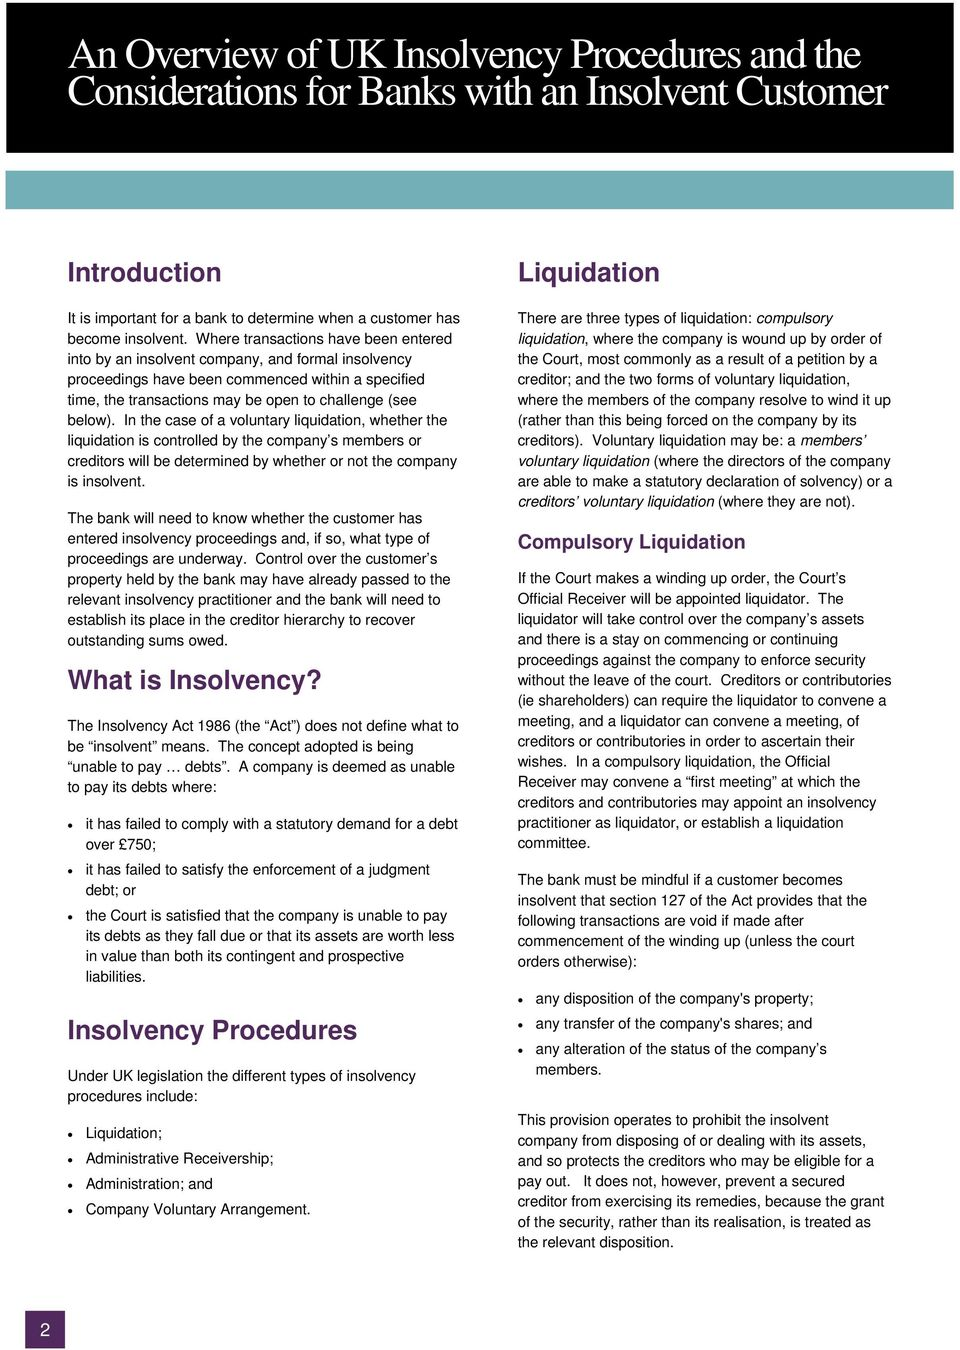 In the case of a voluntary liquidation, whether the liquidation is controlled by the company s members or creditors will be determined by whether or not the company is insolvent.